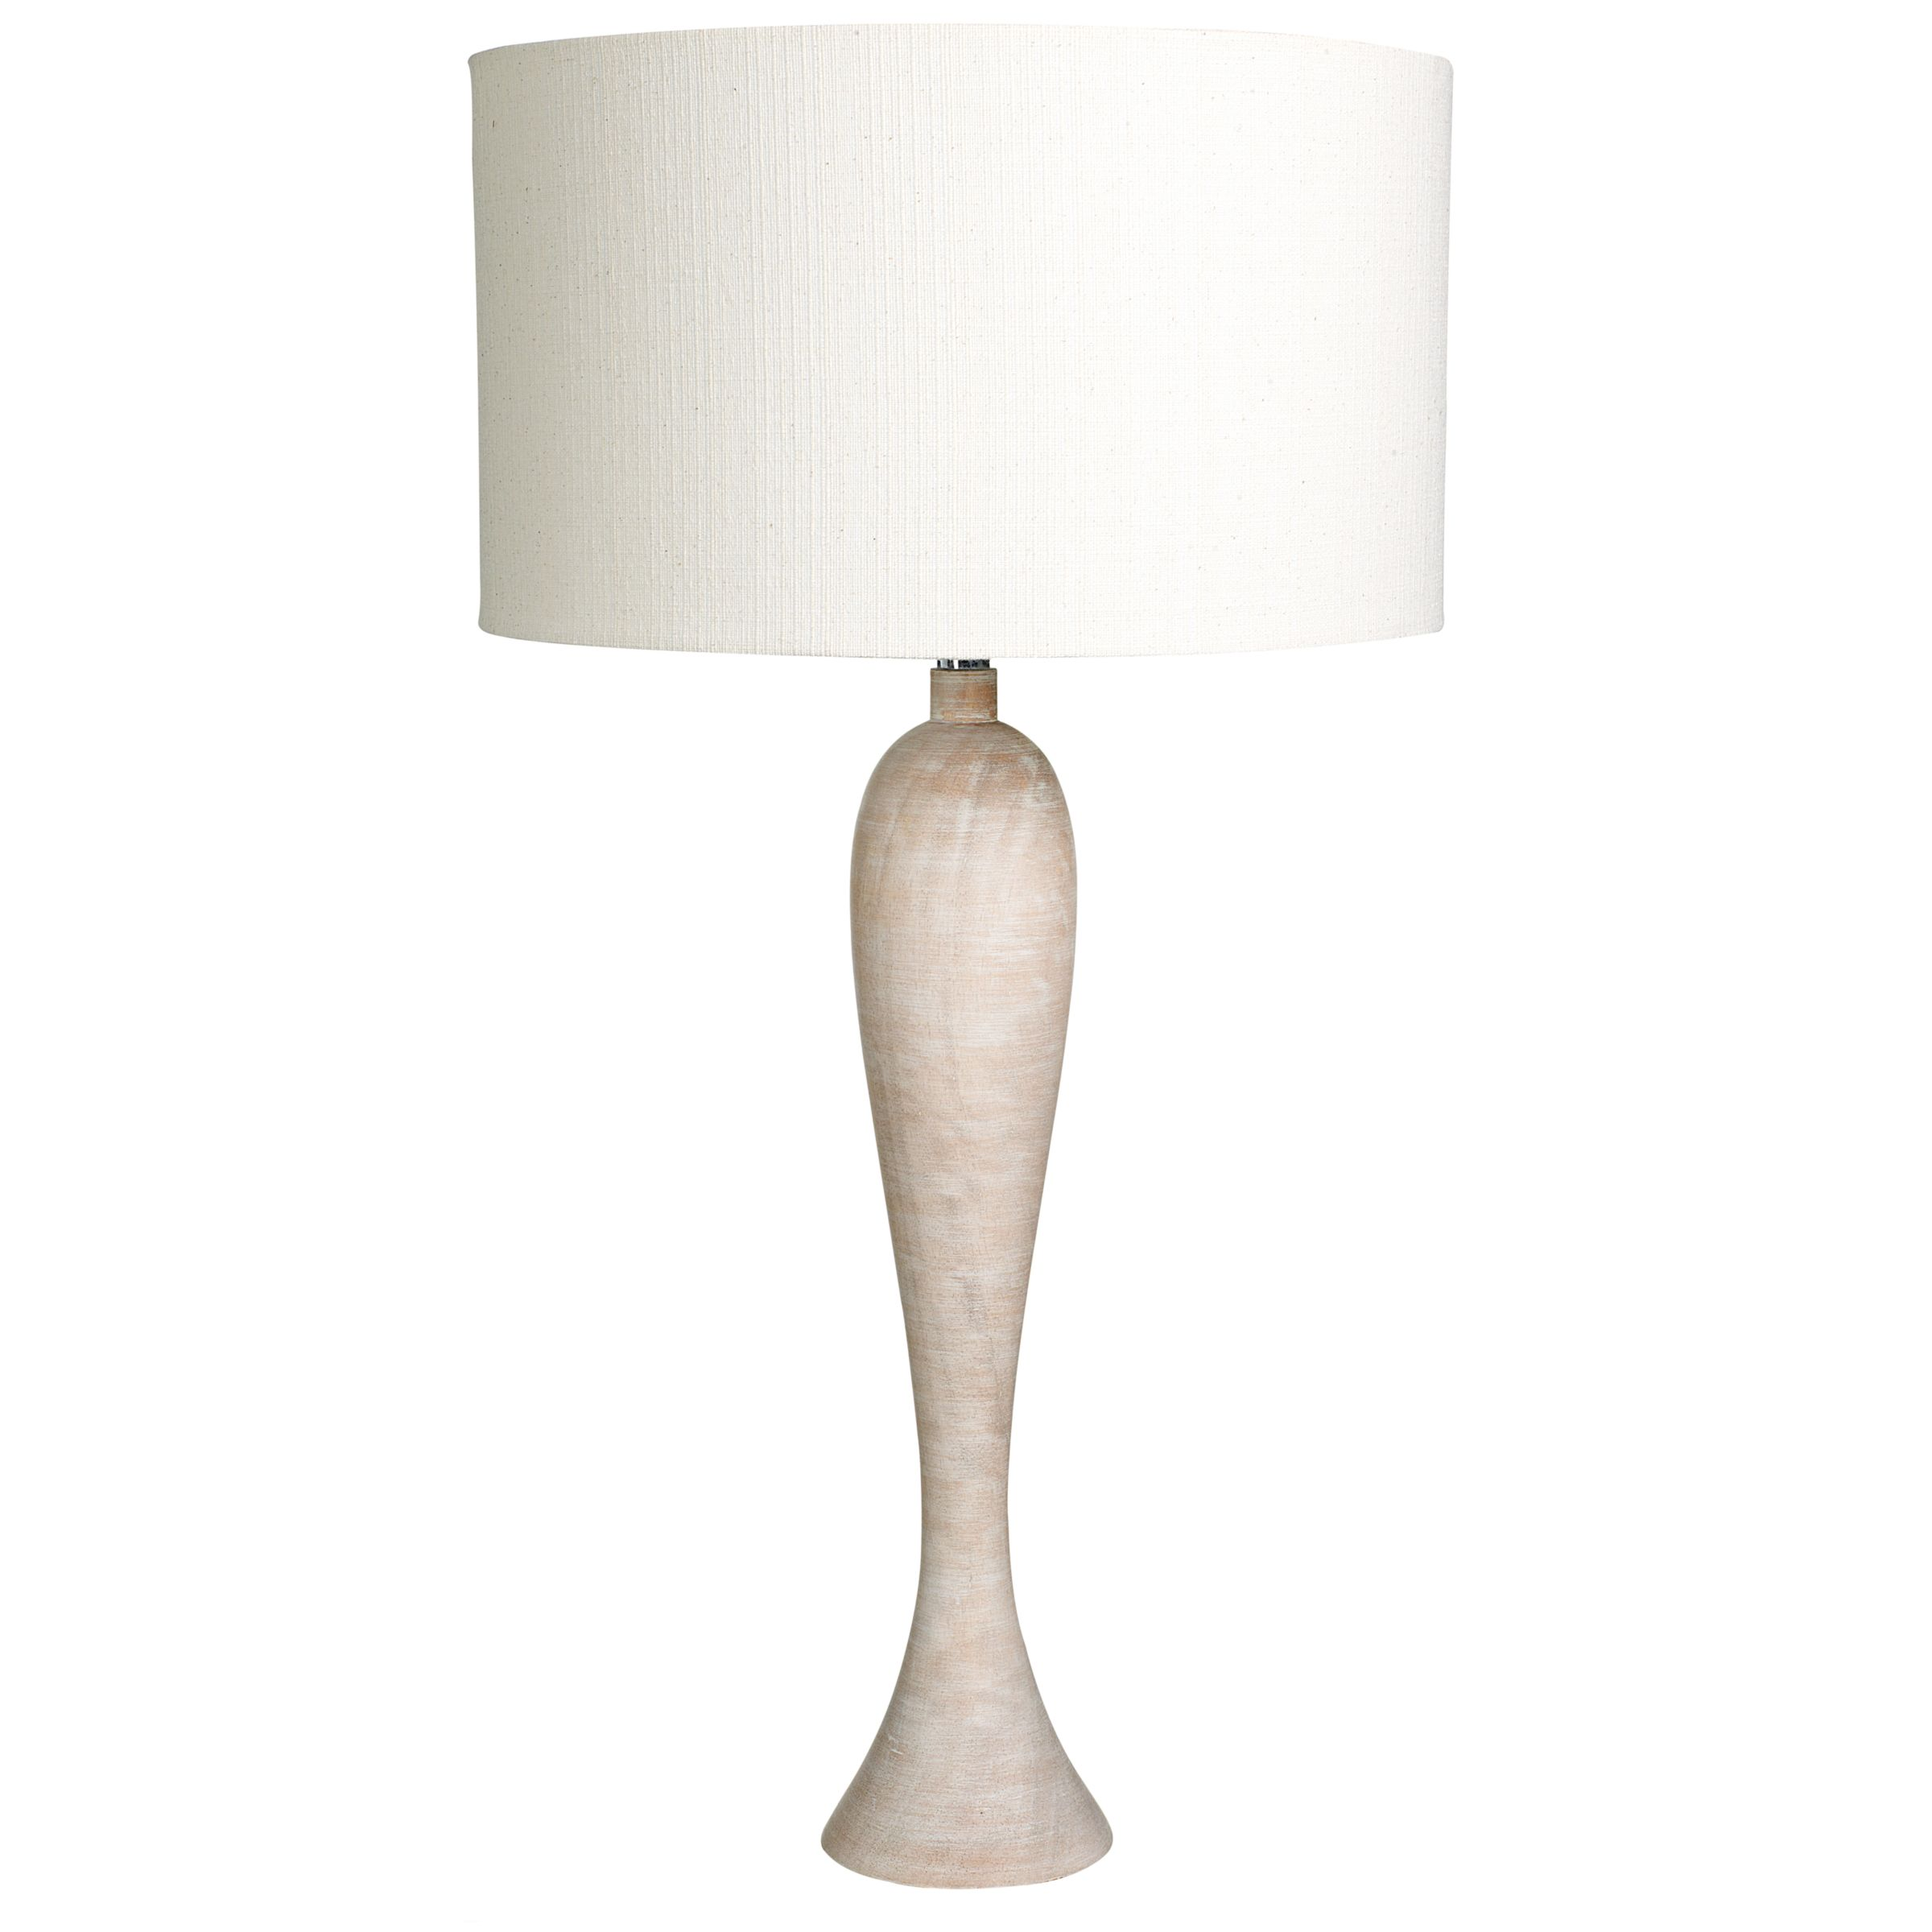 Daylight Floor Lamp John Lewis Table Lamp Natural